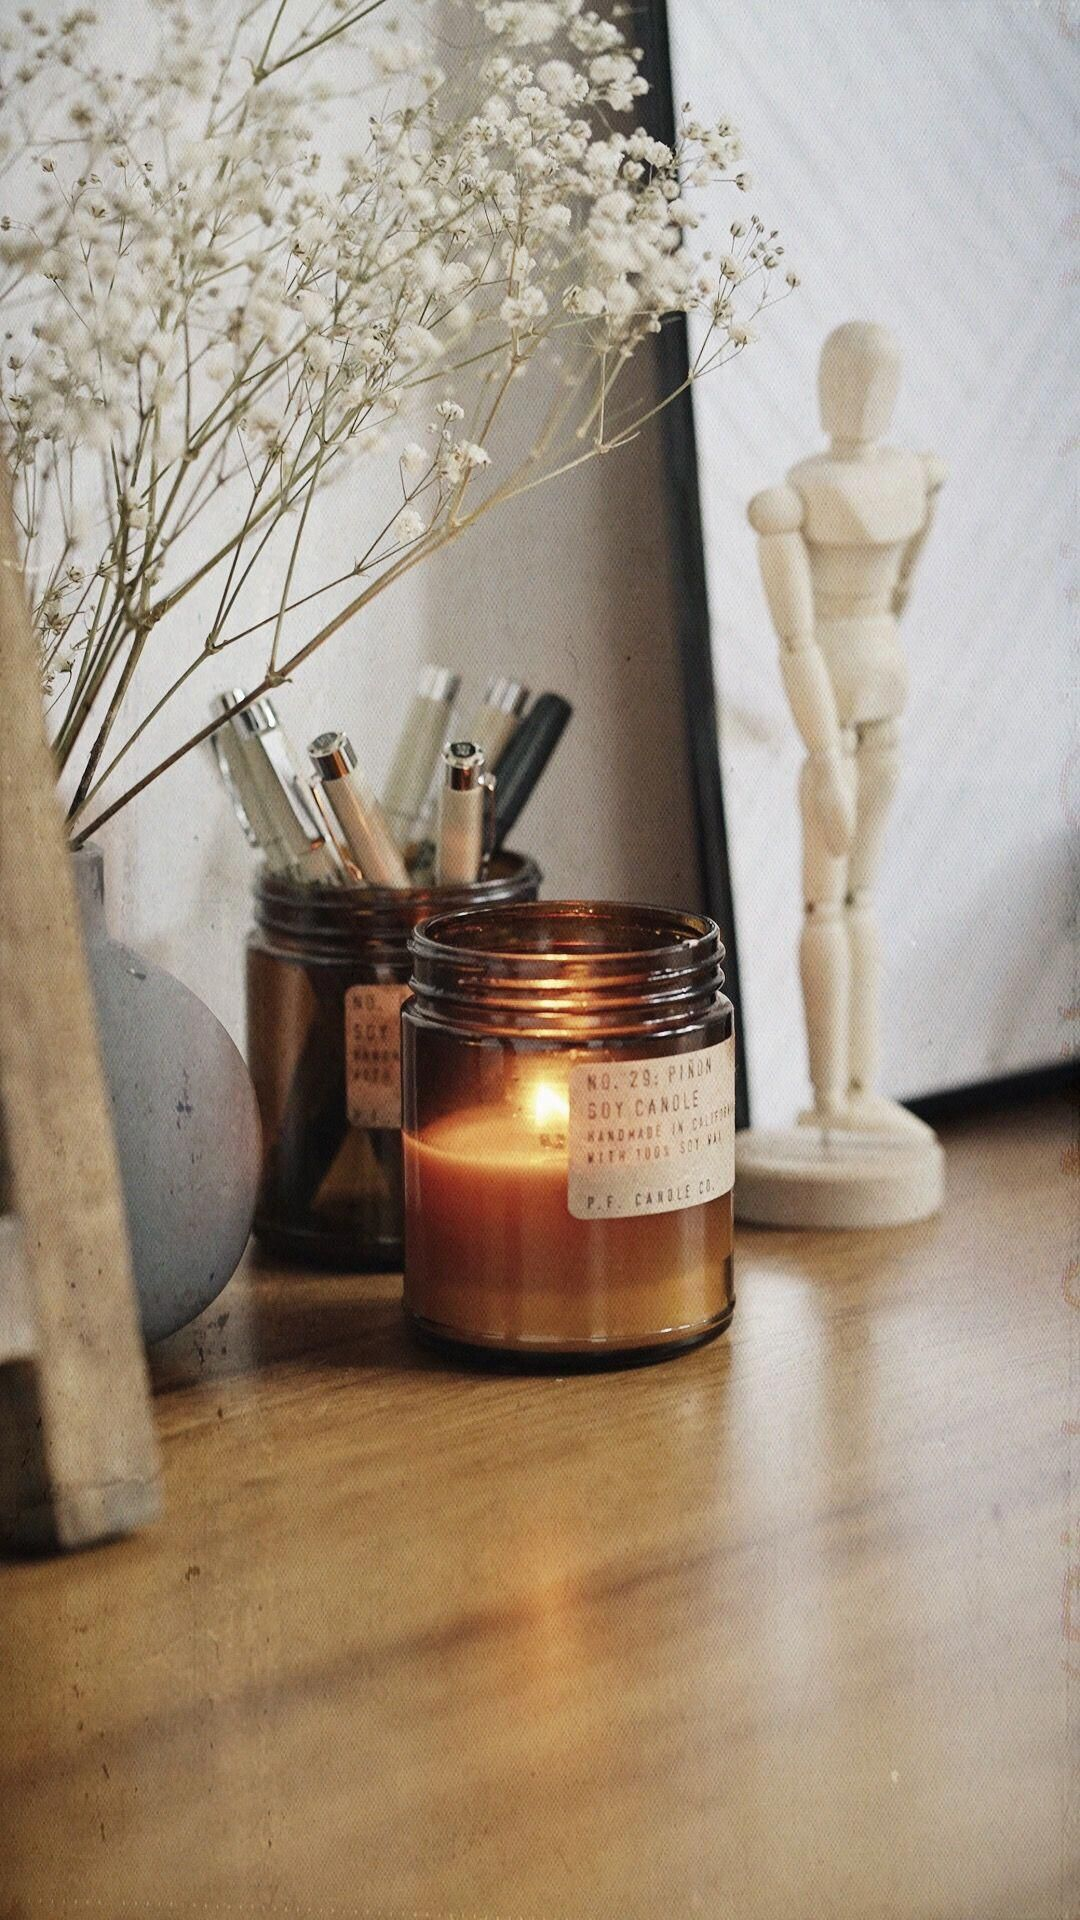 Candles Currently Burning (With images) | Beautiful houses ...